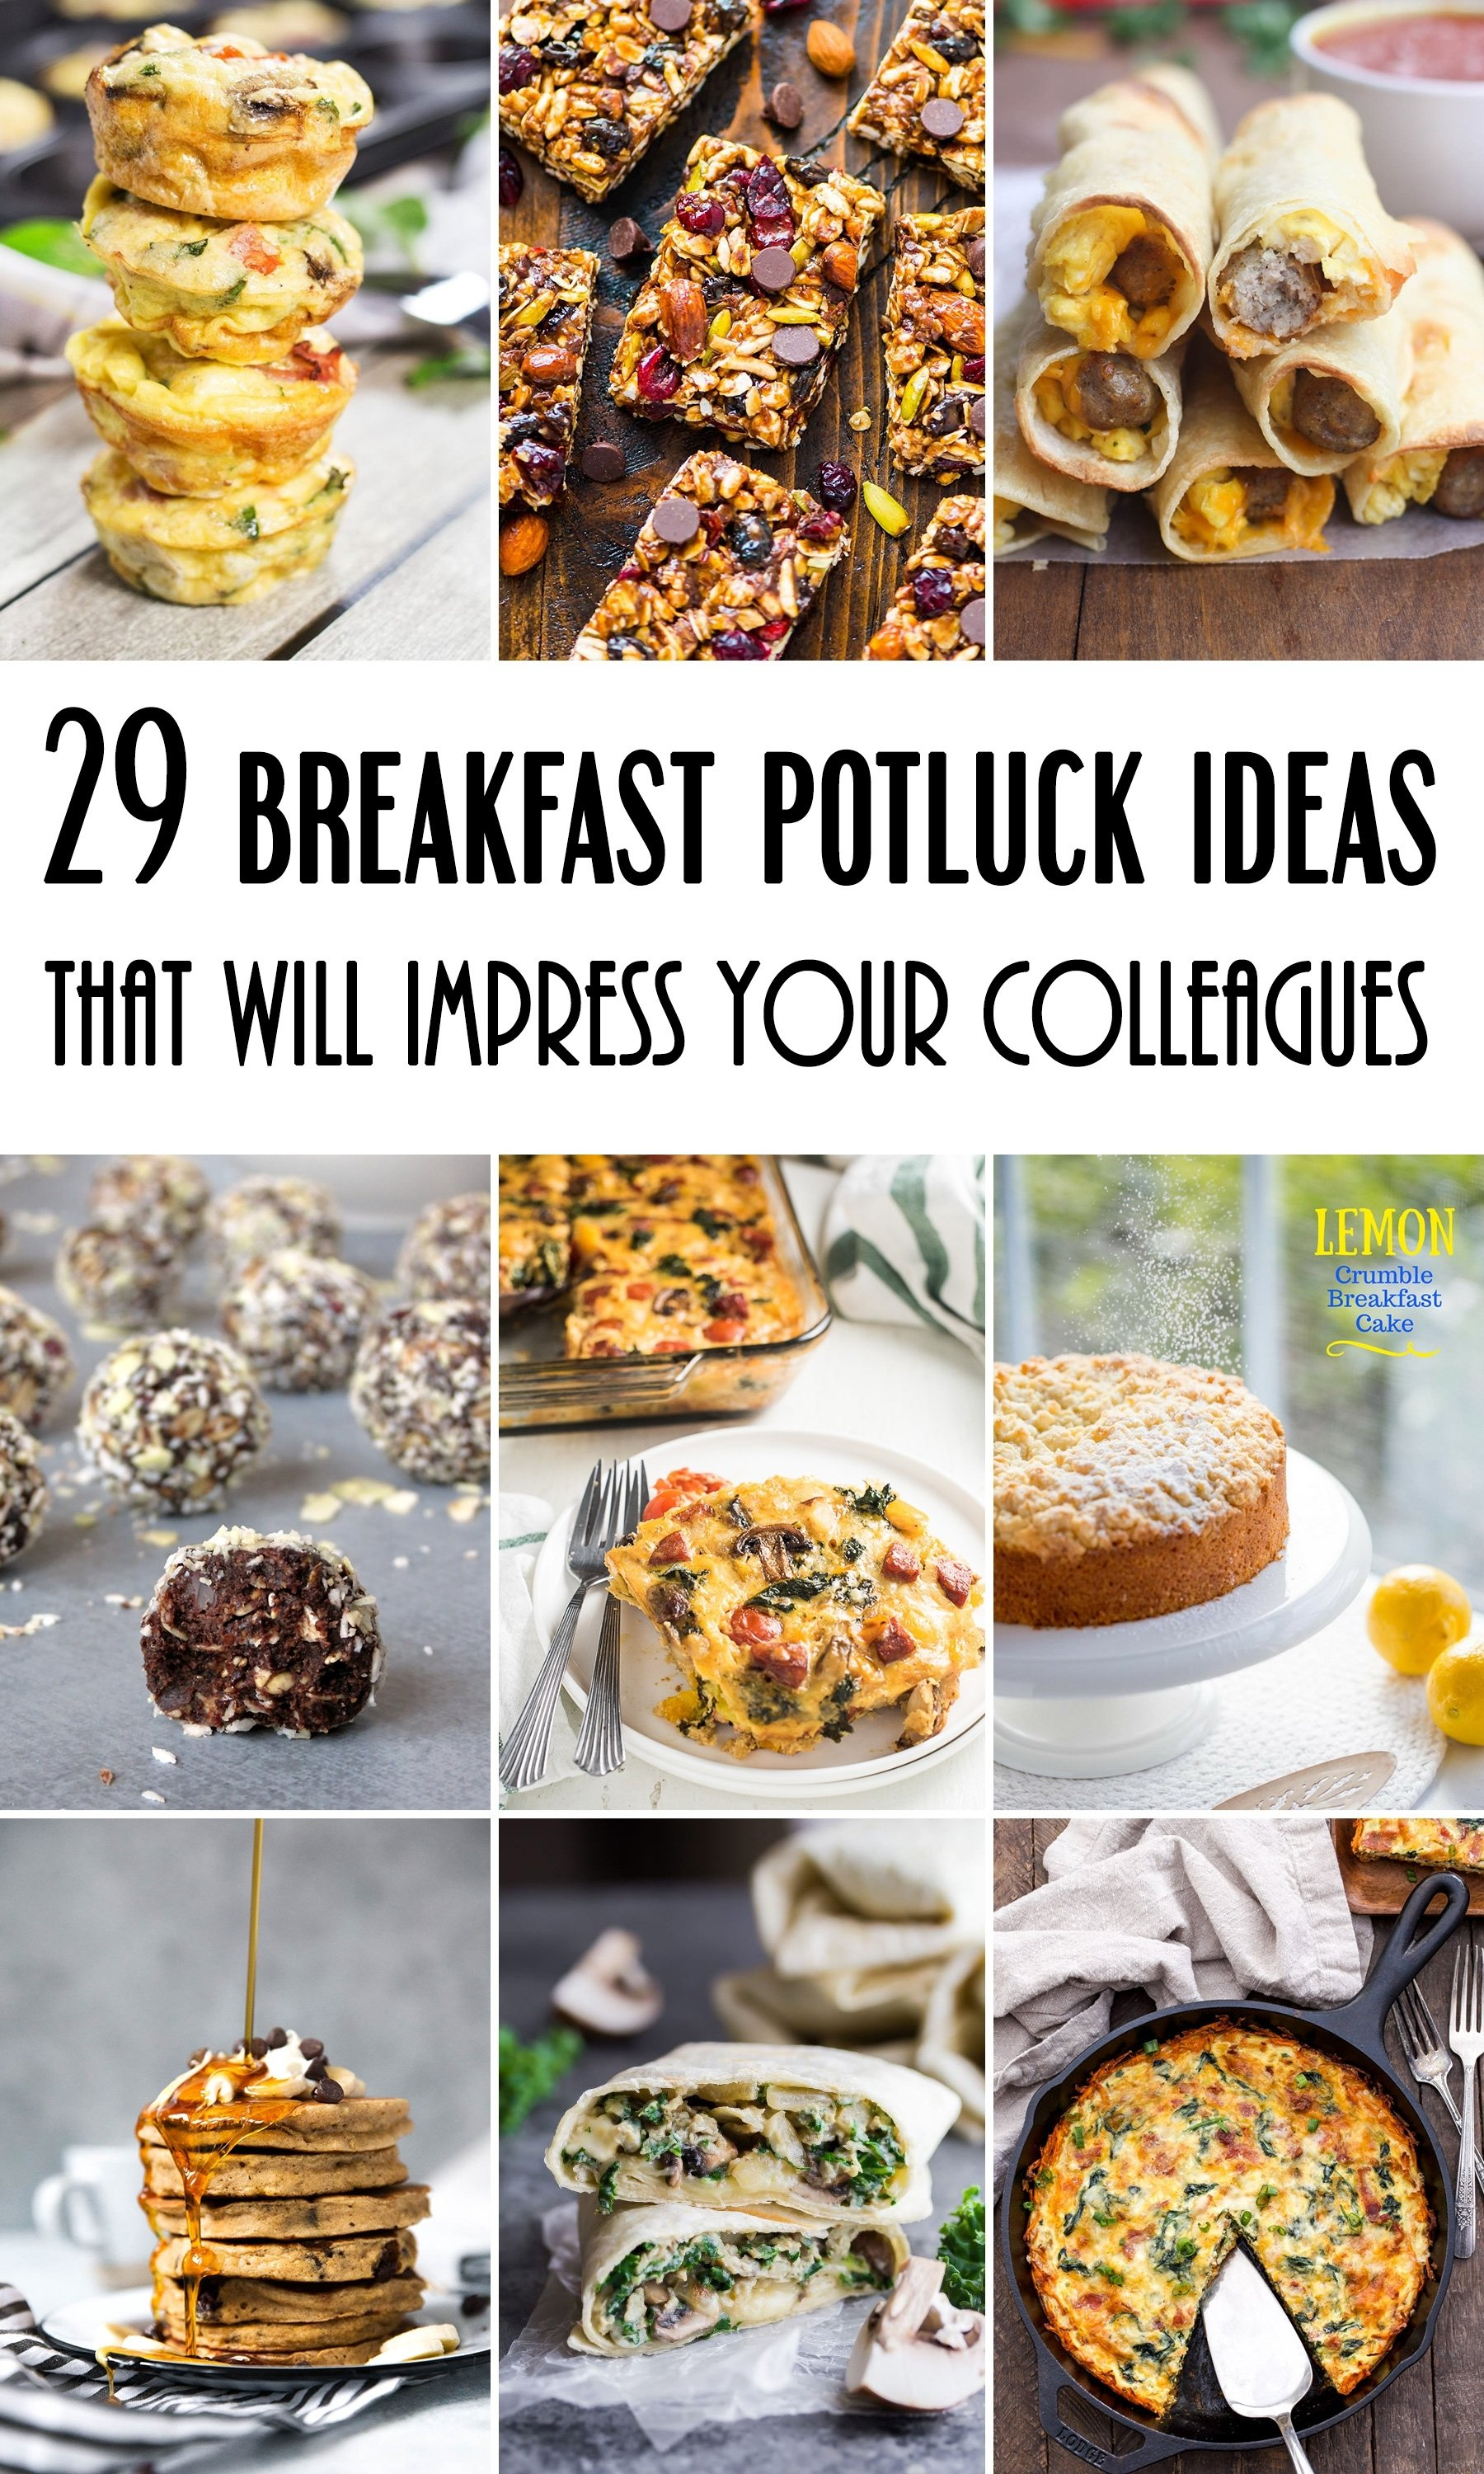 10 Cute Easy Breakfast Ideas For Work 29 breakfast potluck ideas for work that will impress your colleagues 9 2020